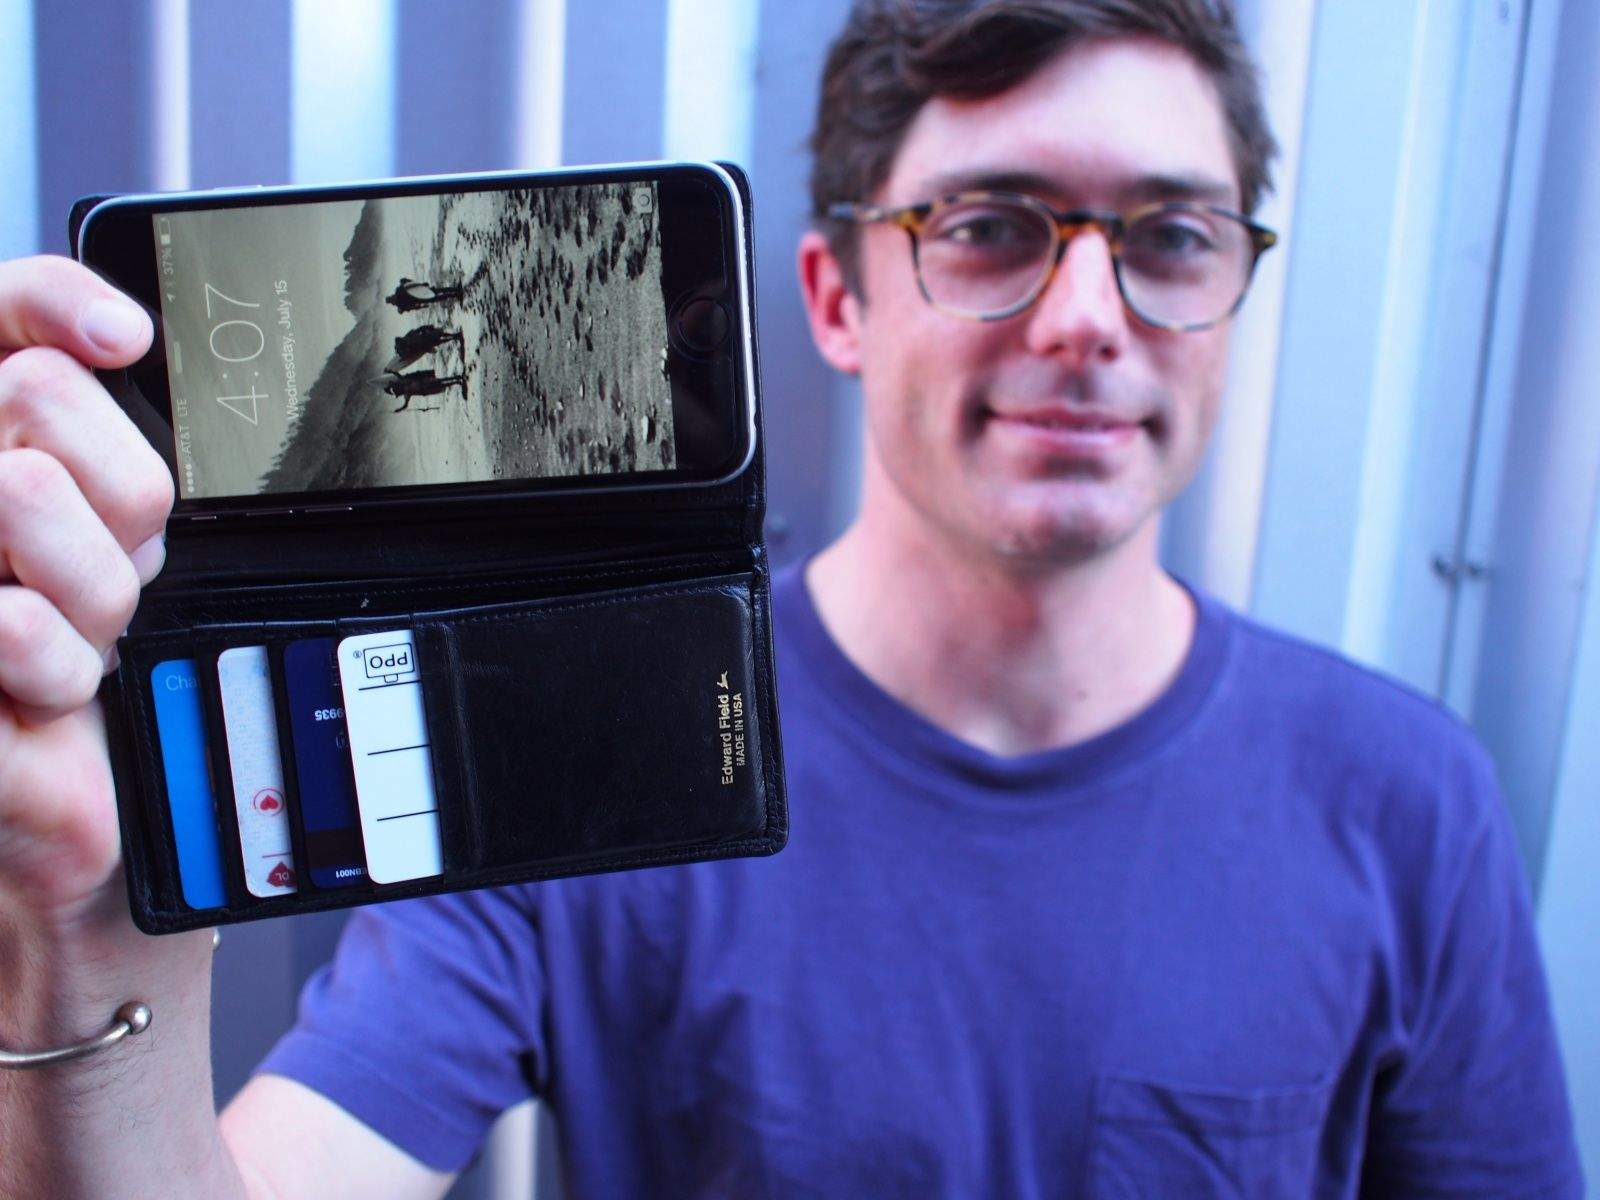 Teddy Winthrop's iPhone wallet case was inspired by his forgetfulness. His dad advised him to get a personal organizer; he made a leather iPhone wallet case instead.